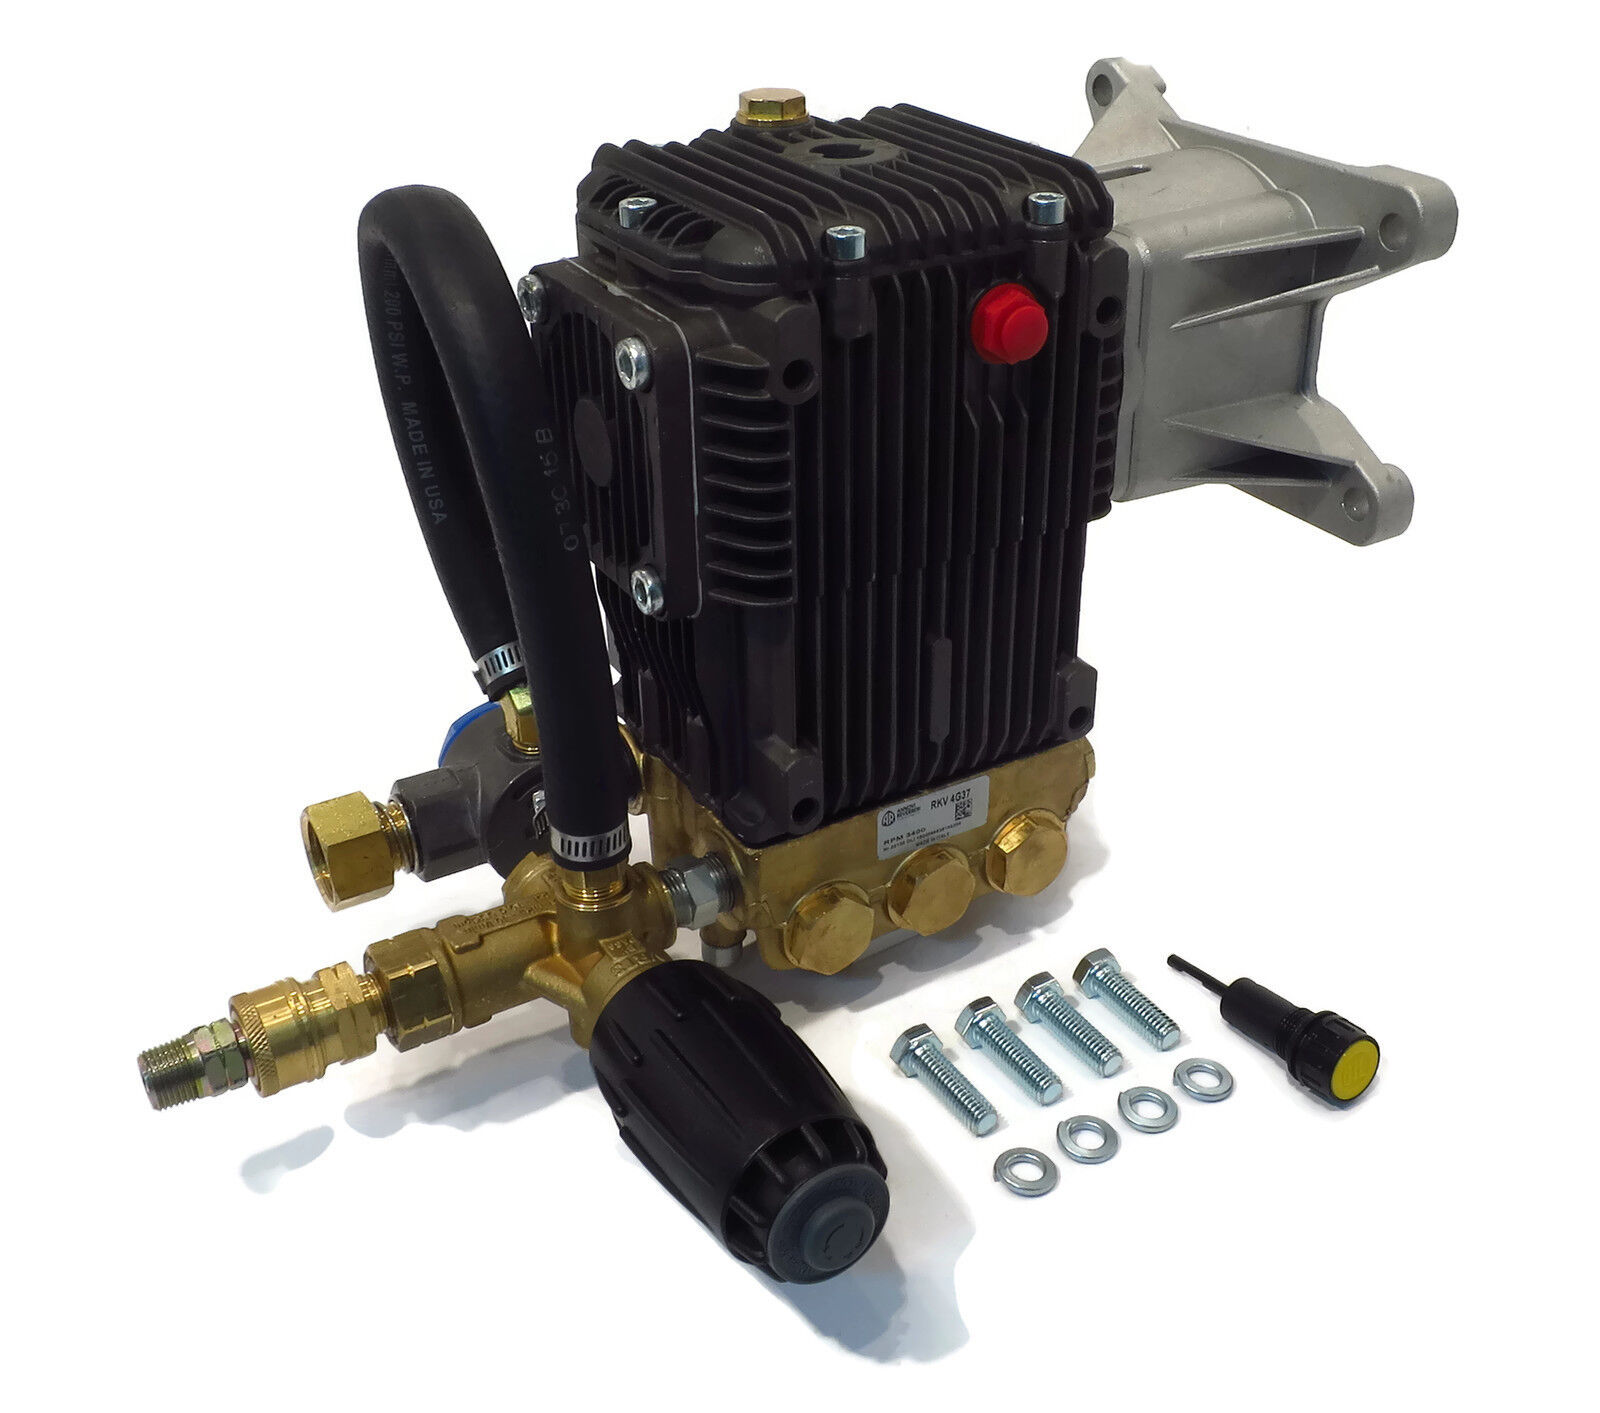 Devilbiss Excell EXWGC3240 Pressure Washer Carburetor carb